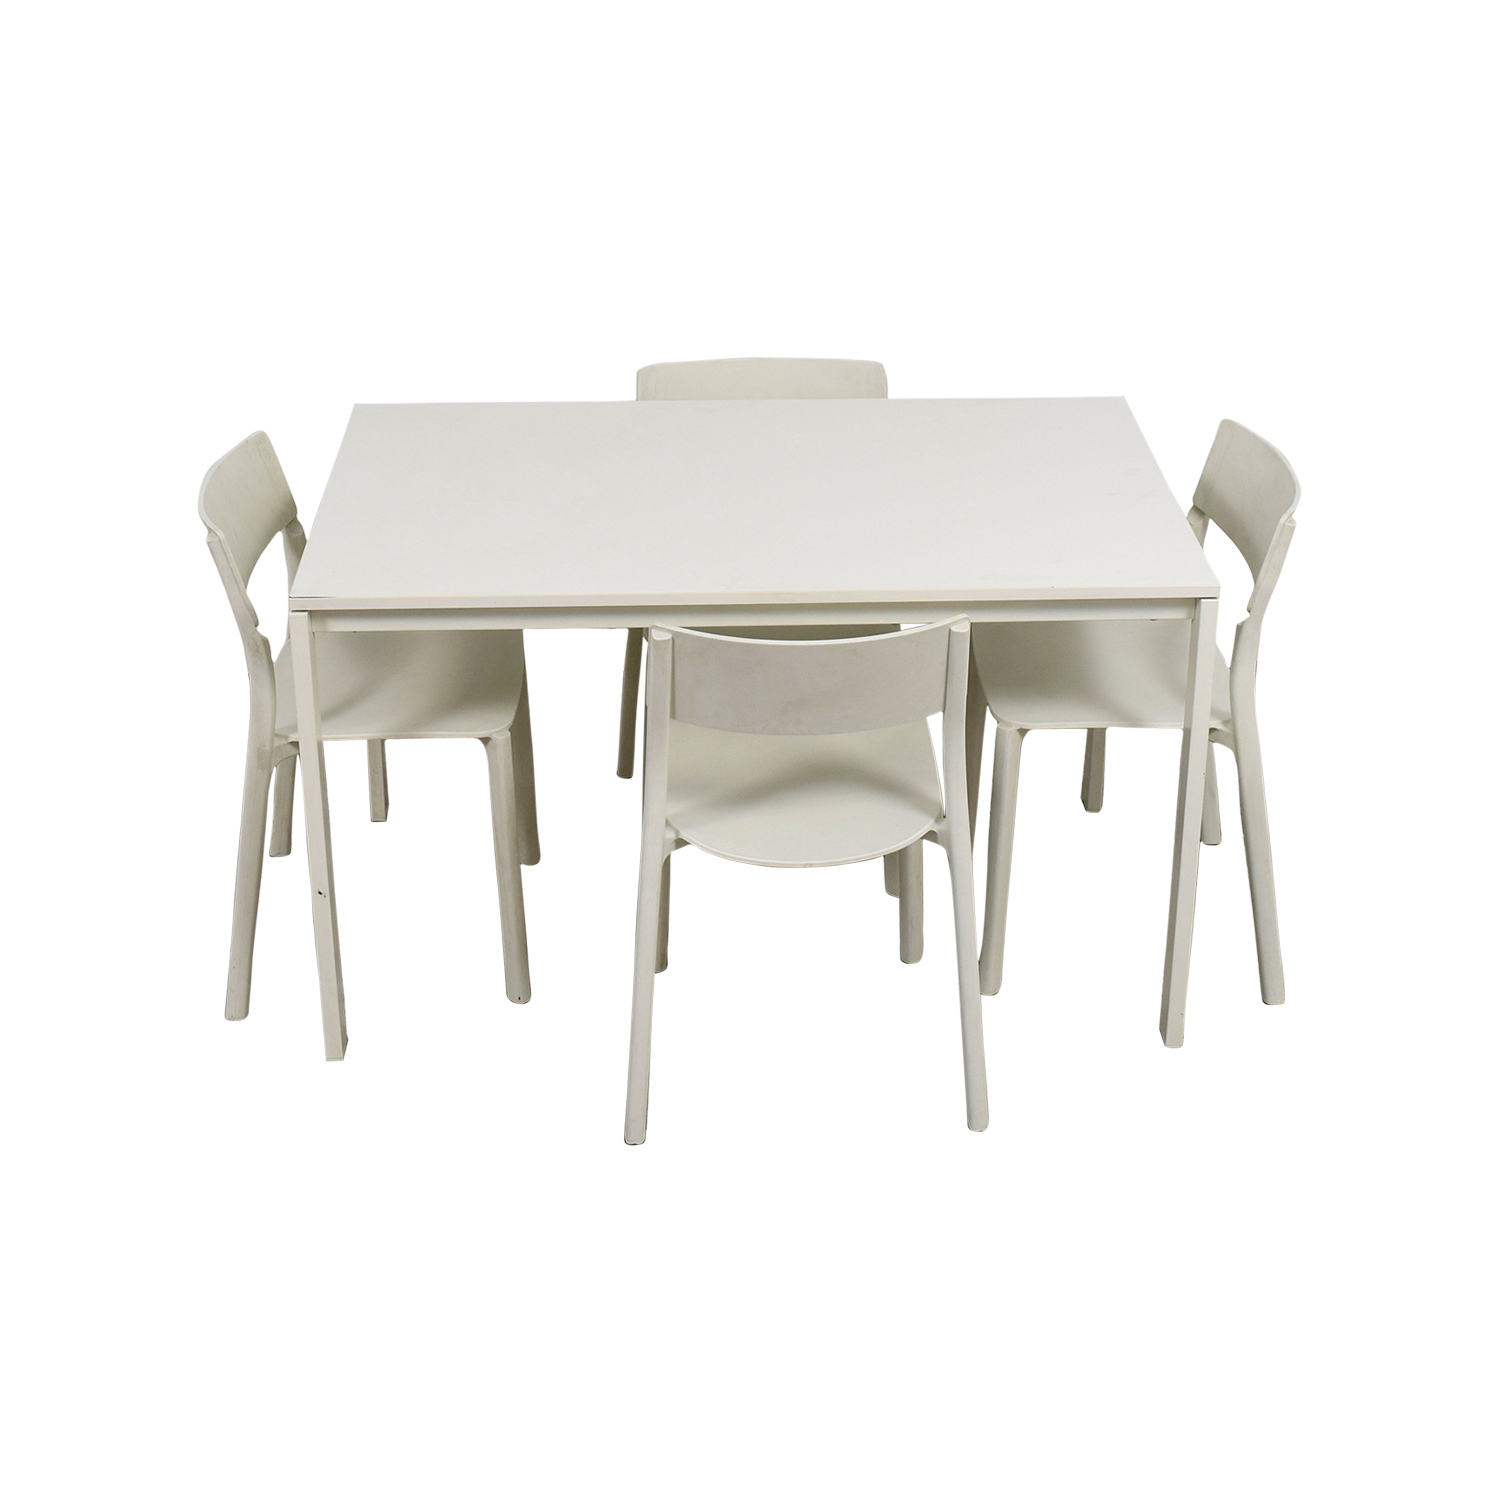 65 OFF   IKEA IKEA White Kitchen Table and Chairs / Tables